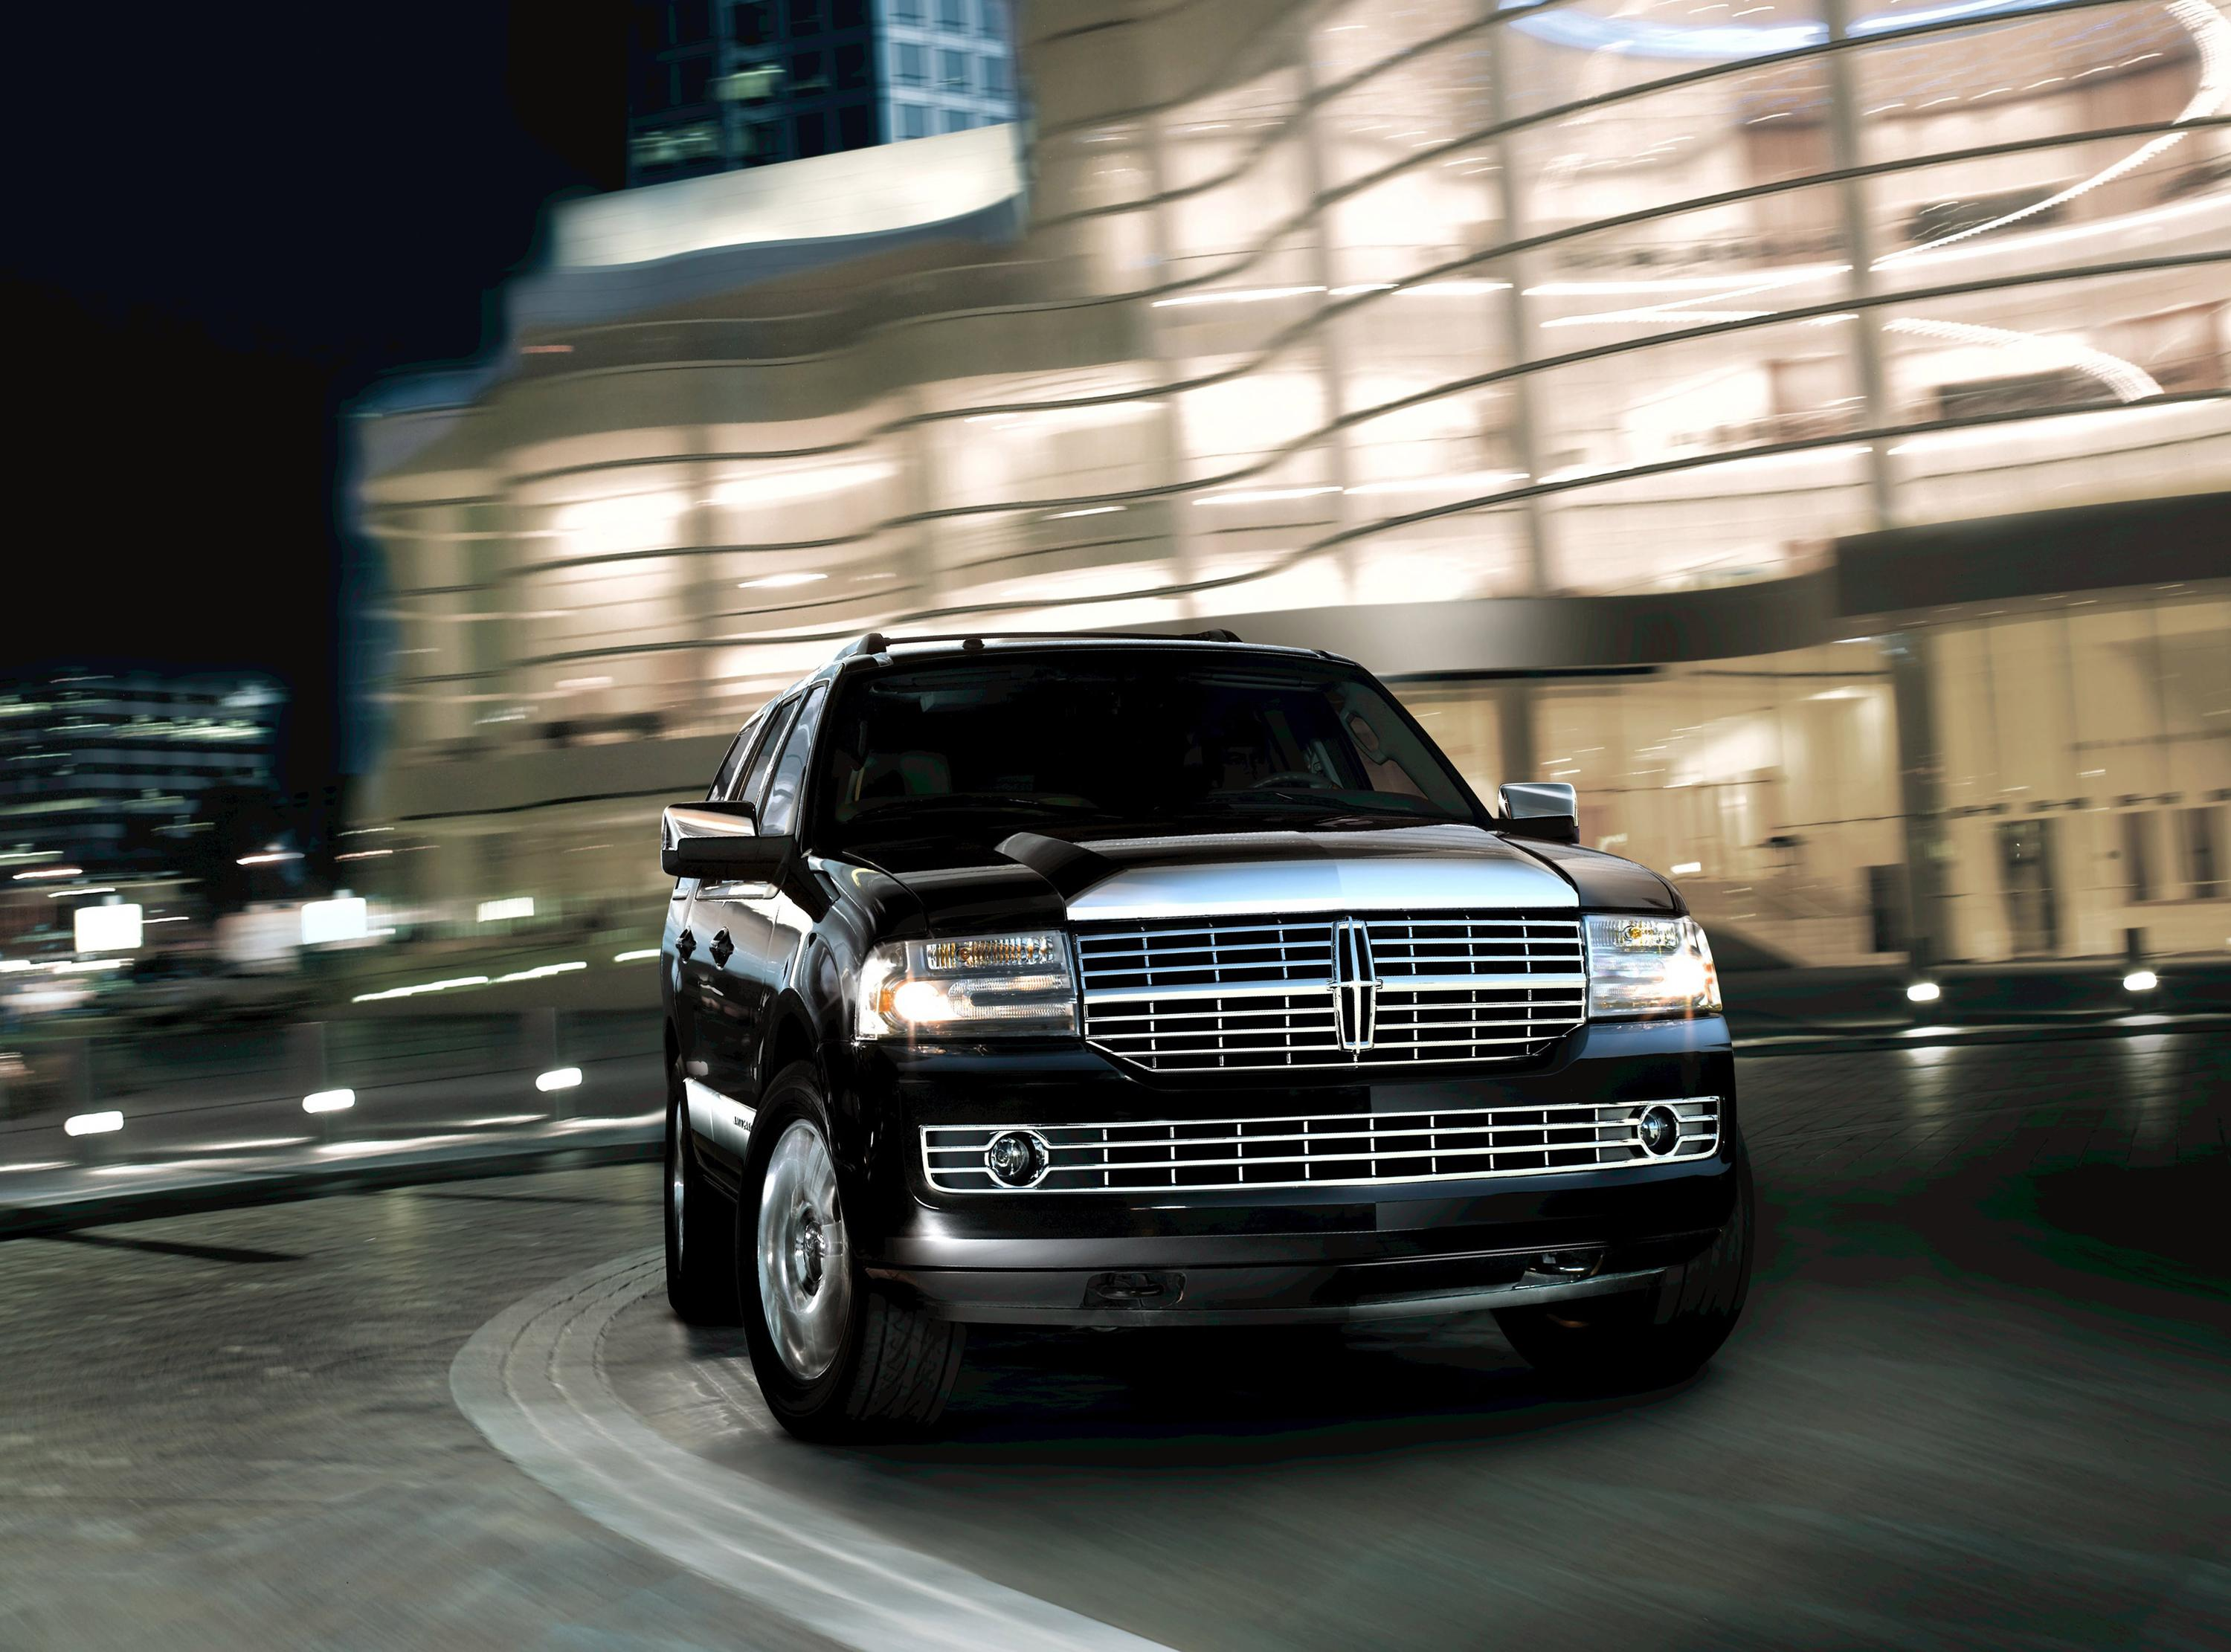 2008 lincoln navigator review top speed. Black Bedroom Furniture Sets. Home Design Ideas